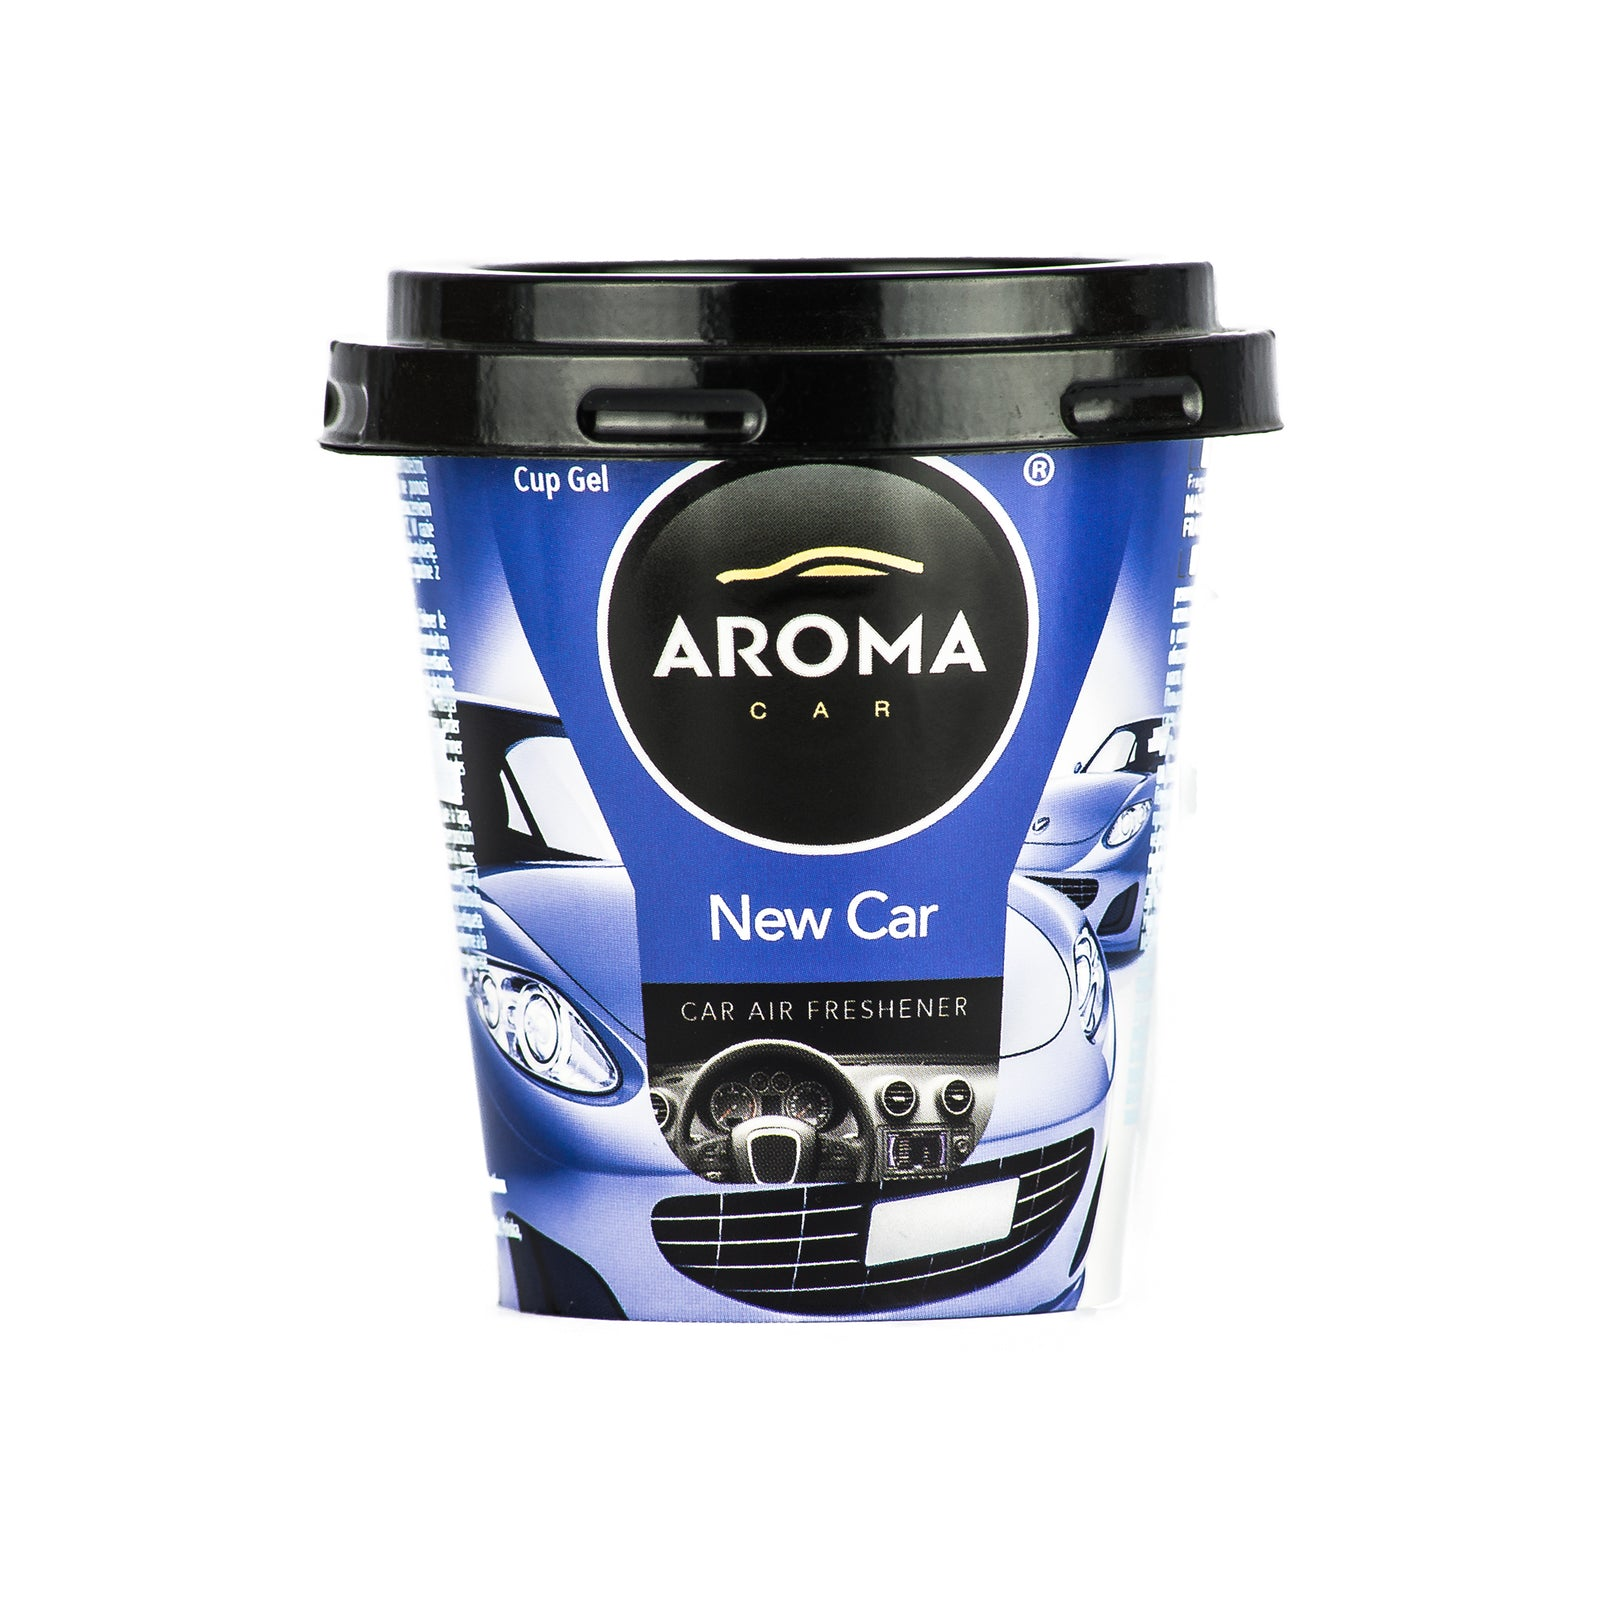 Aroma Car Cup Gel New Car Standing